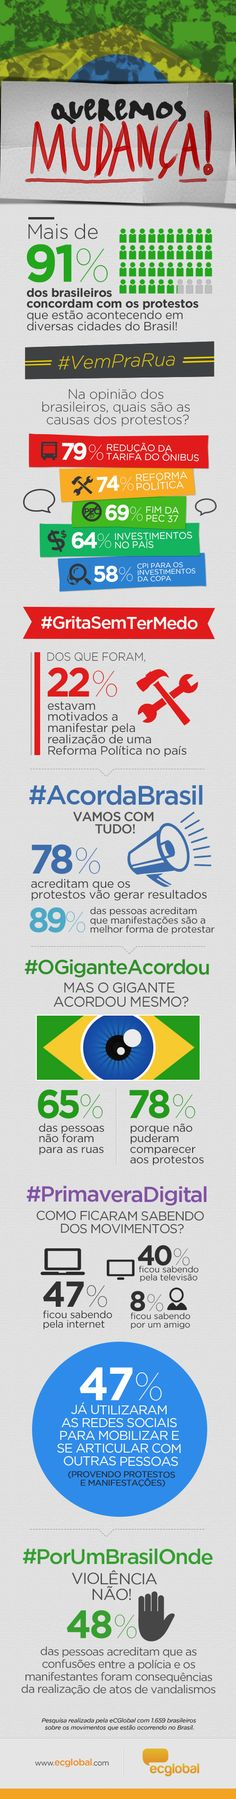 #infographic #Brazil #survey conducted by @eCGlobalNet #consumer #insights #community